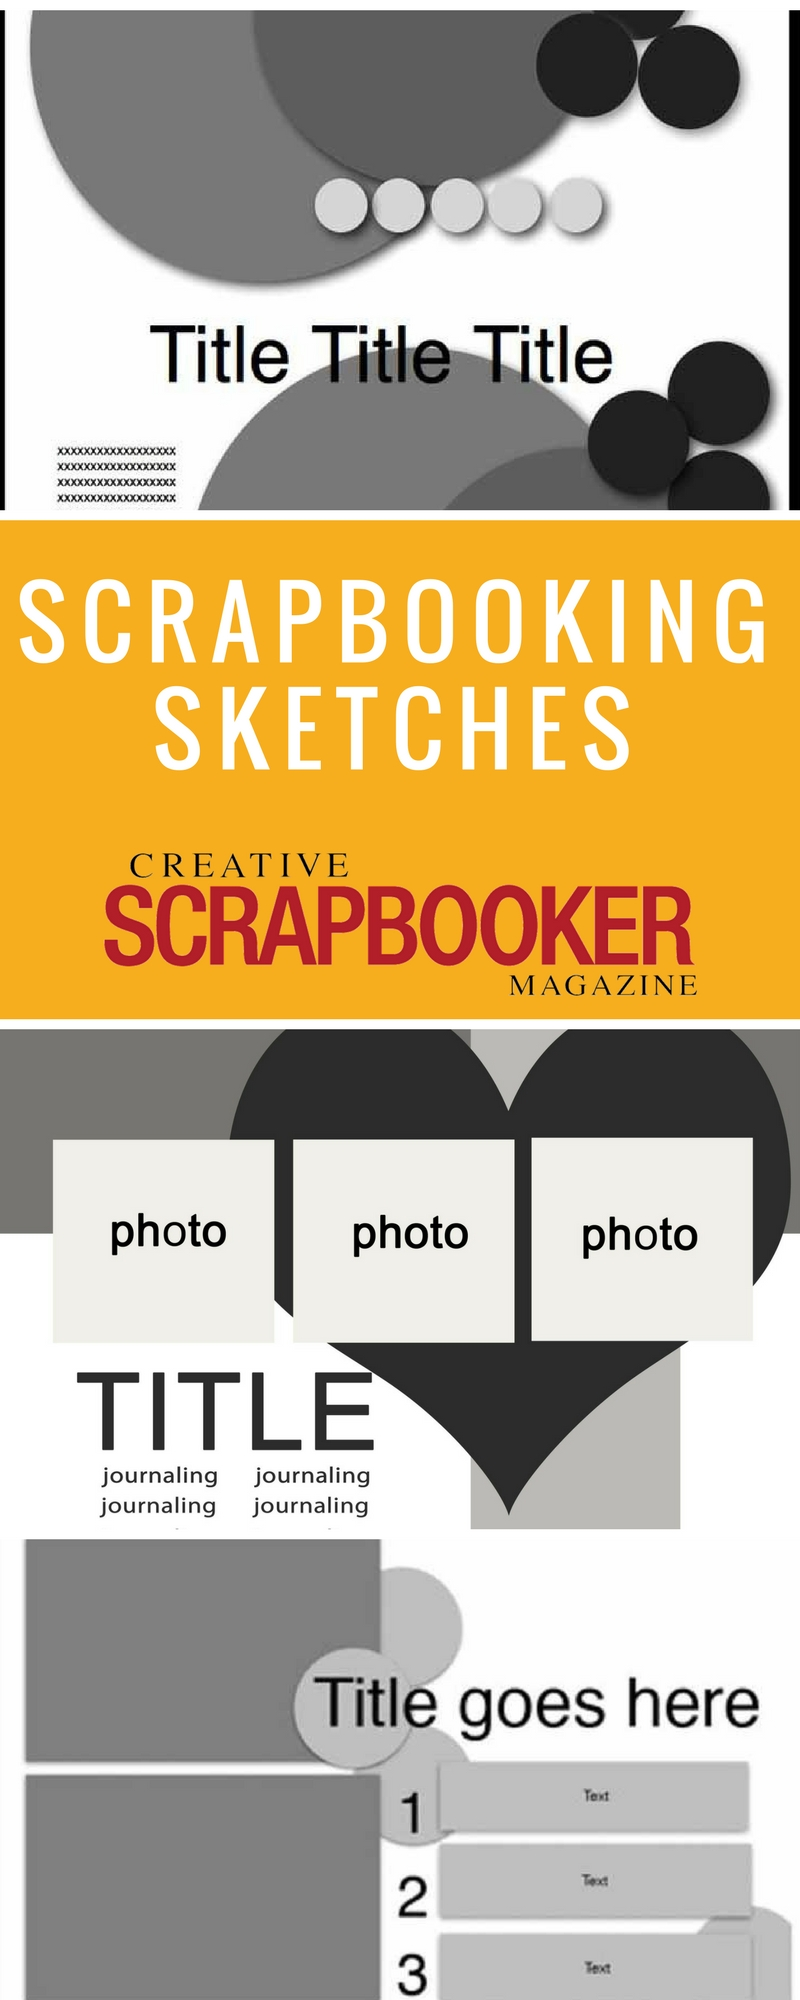 Scrapbooking sketches for cards, layouts, art journals and more.